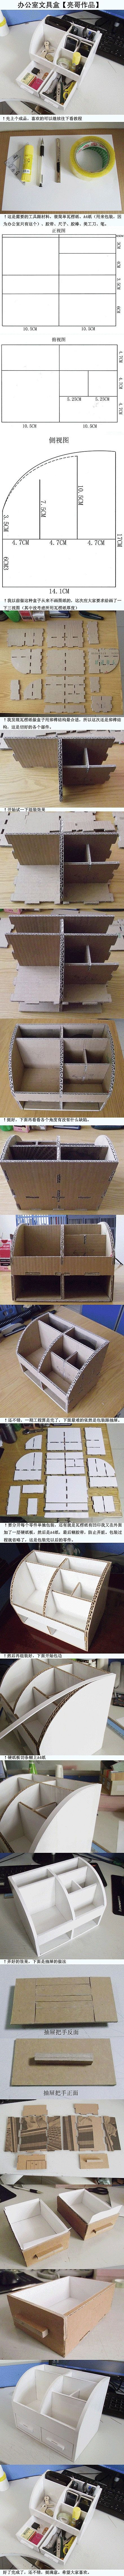 DIY Carton Office Stationery Box DIY Projects | UsefulDIY.com